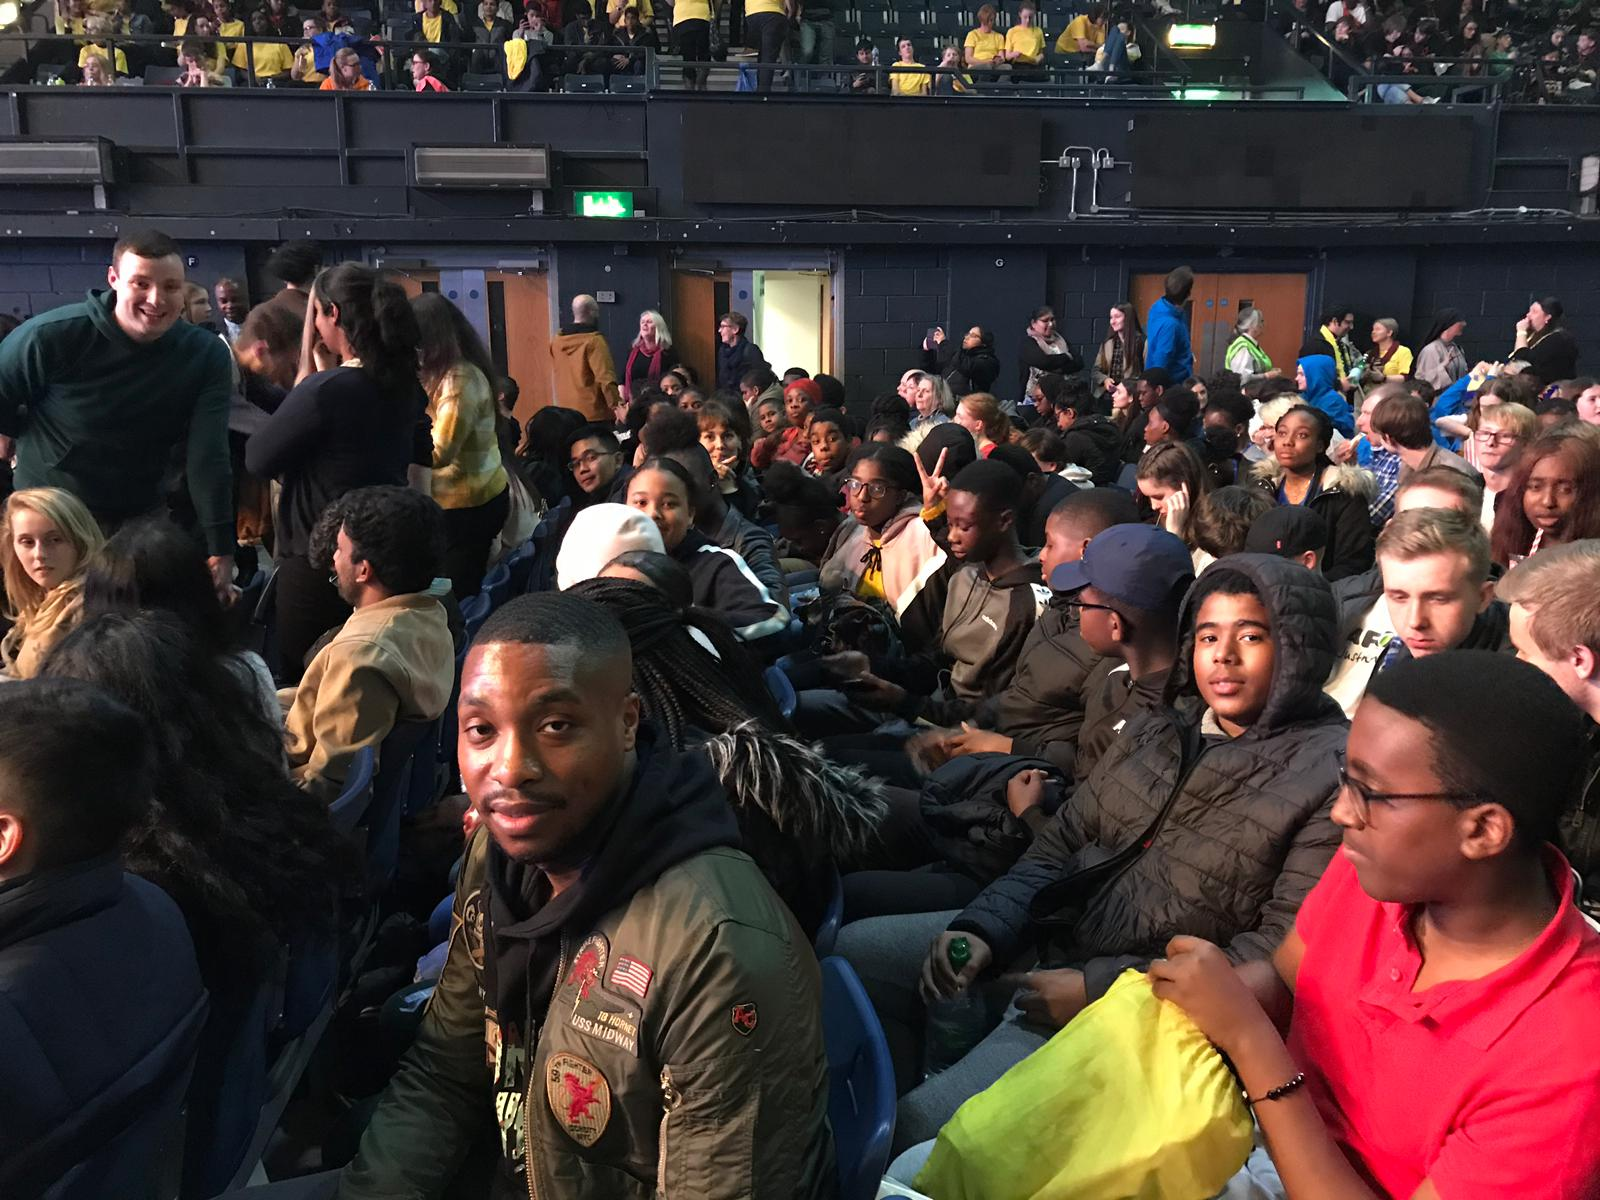 Our brilliant youth and their supporters at Flame 2019